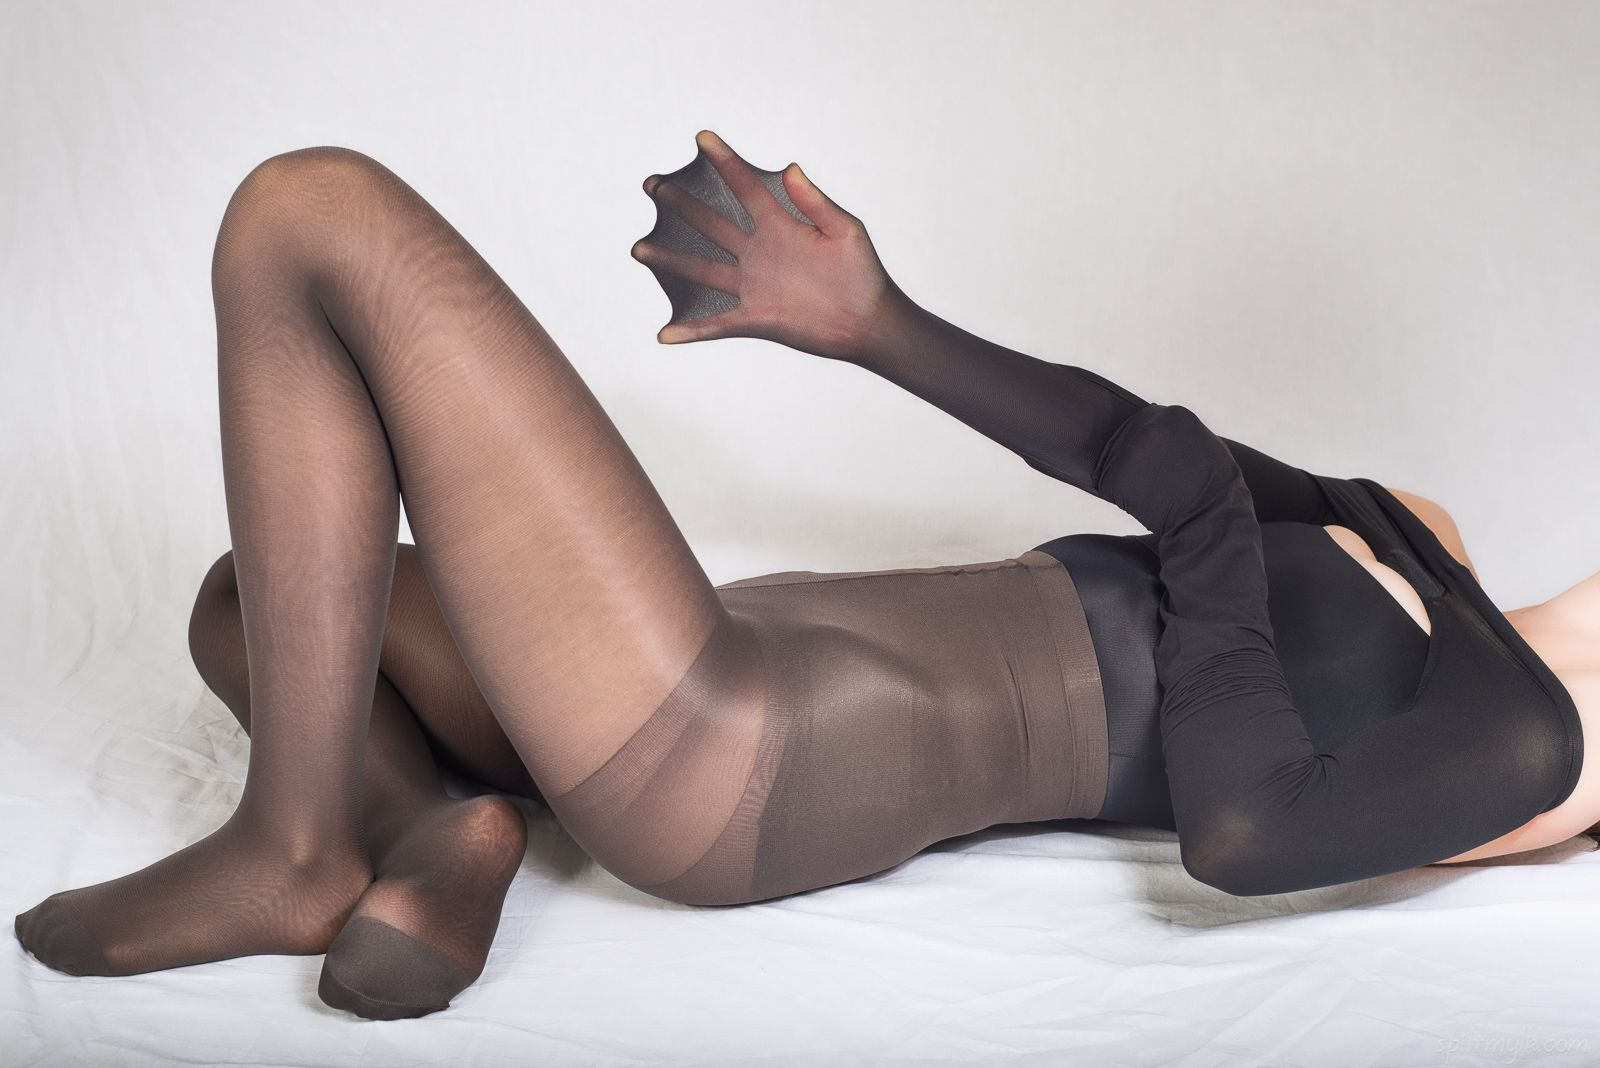 Pantyhose encasement galleries, sexy milf with great tits sucking cock dry